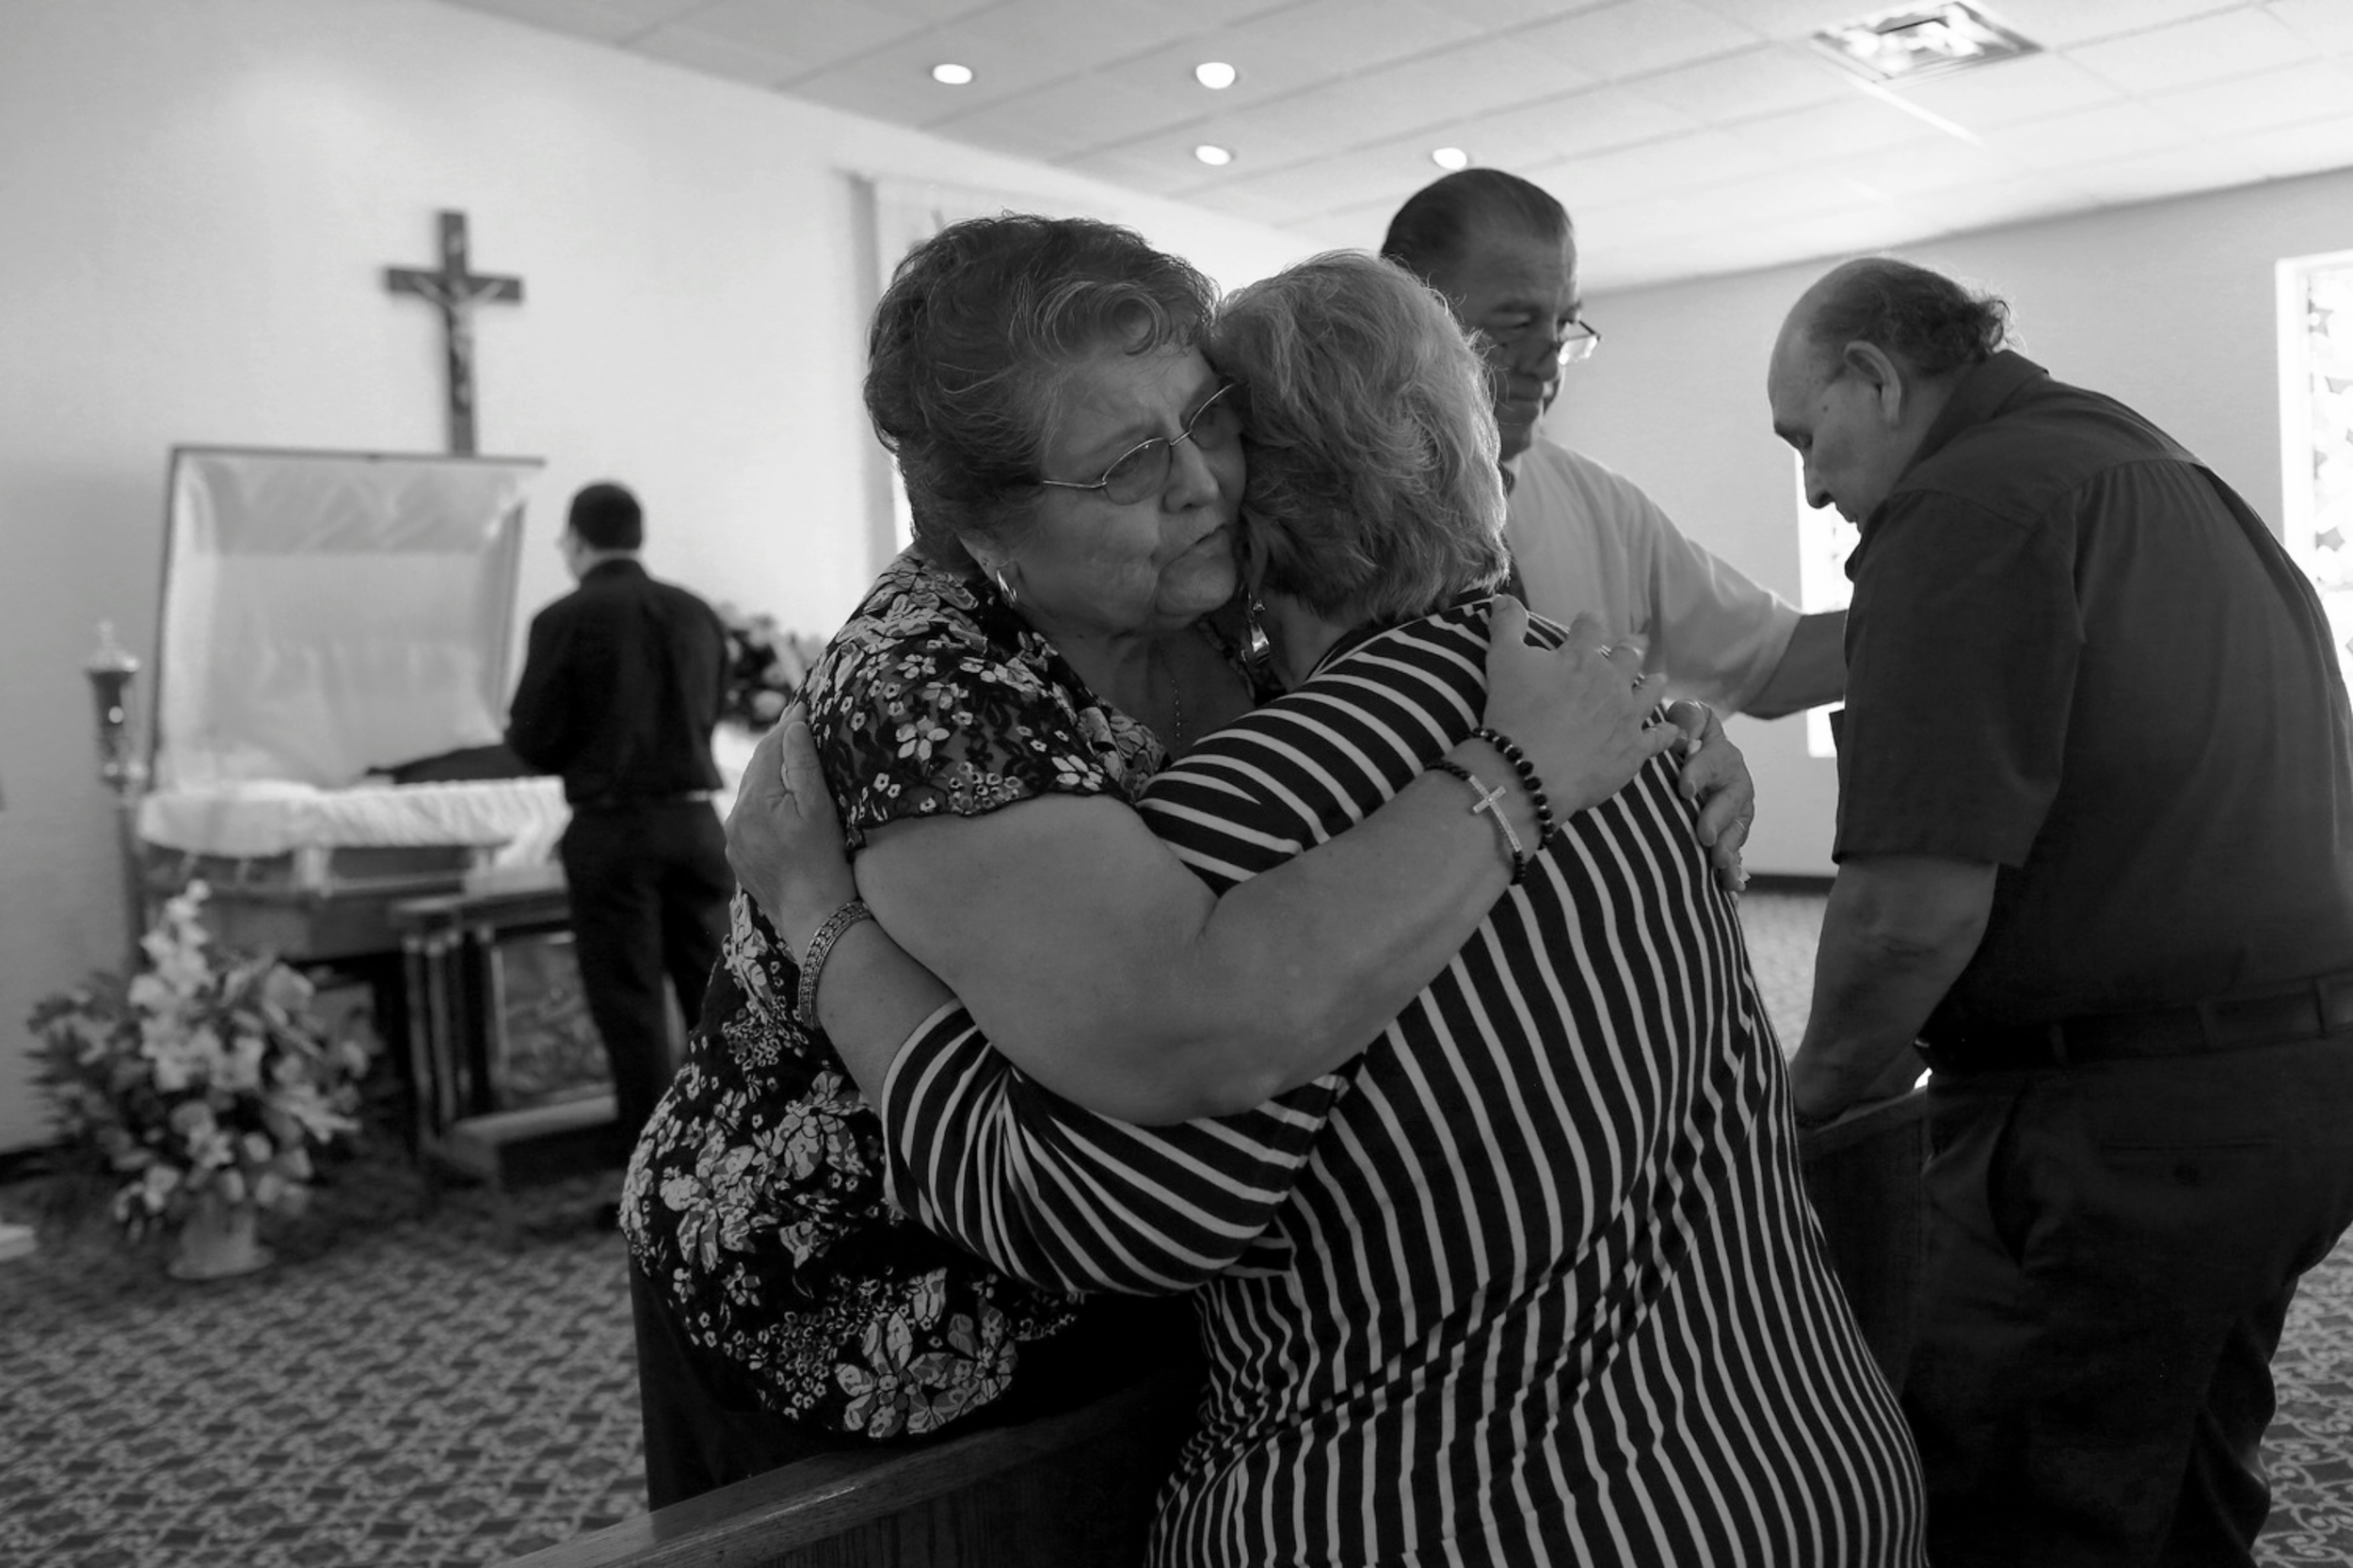 Elena Garcia and Hector Garcia Sr., the parents of Hector Garcia Jr., are embraced by their best friends, Patsy and Ruben Villarreal, during the private viewing for their son at Trevino Funeral Home Palo Alto. © Lisa Krantz/San Antonio Express-News/ZUMA Press